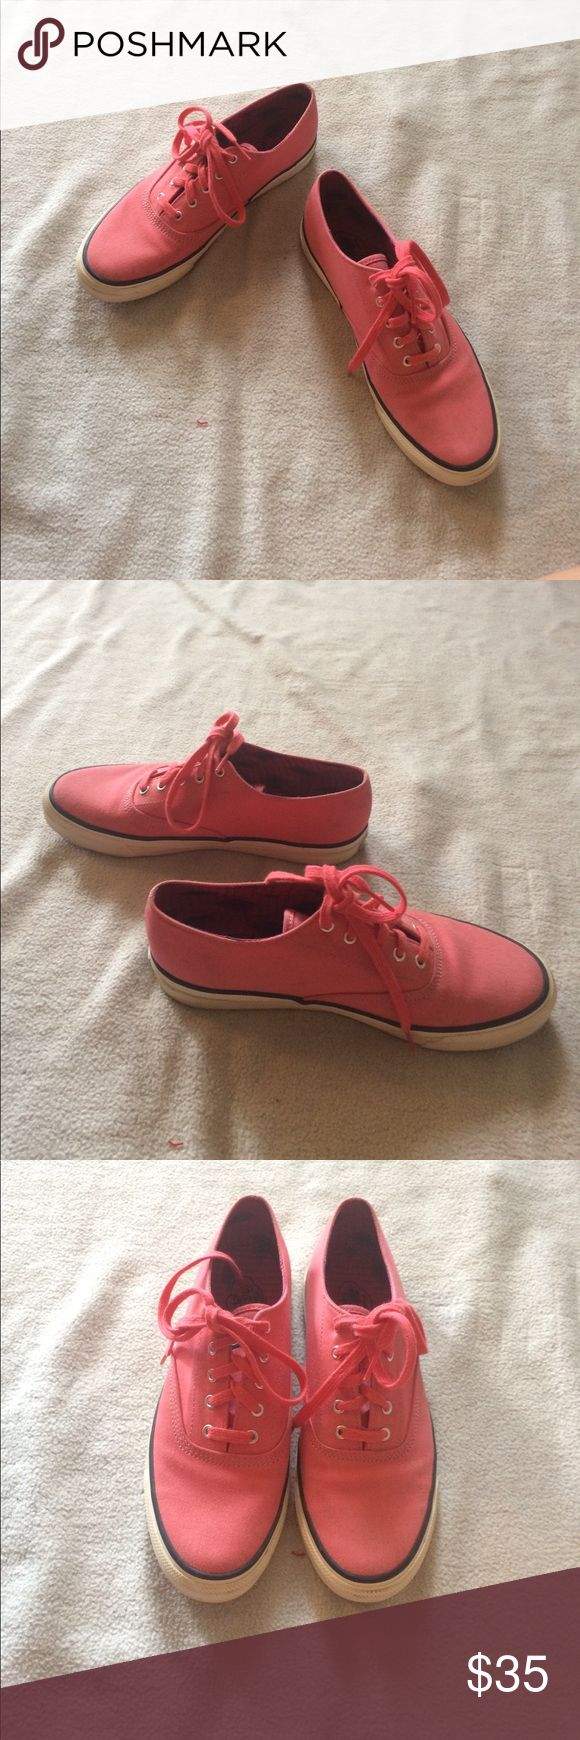 Sperry Top Sider Canvas shoes 7.5 Coral colored canvas Sperry Shoes! Gently worn, will clean up very nicely! Have so much life left in them! Women's size 7.5 Sperry Top-Sider Shoes Sneakers